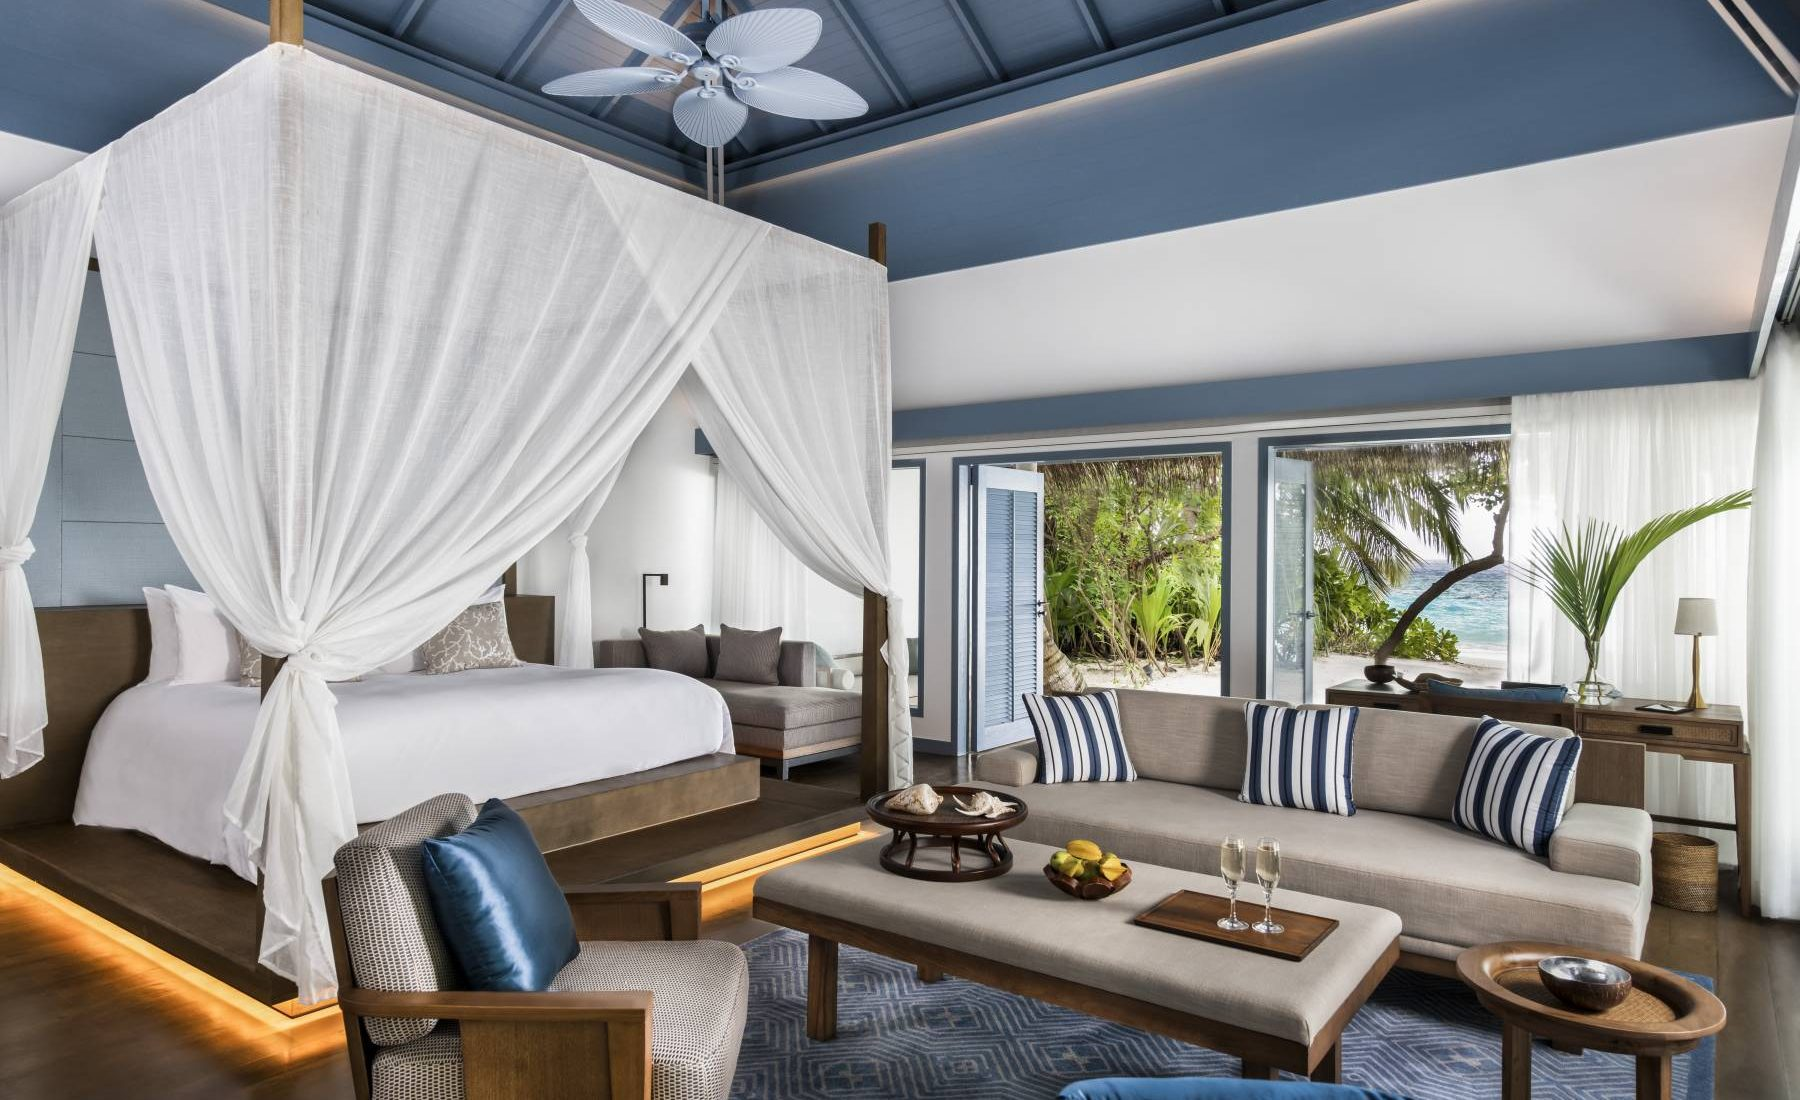 Raffles Maldives Meradhoo - Beach Villa with Pool